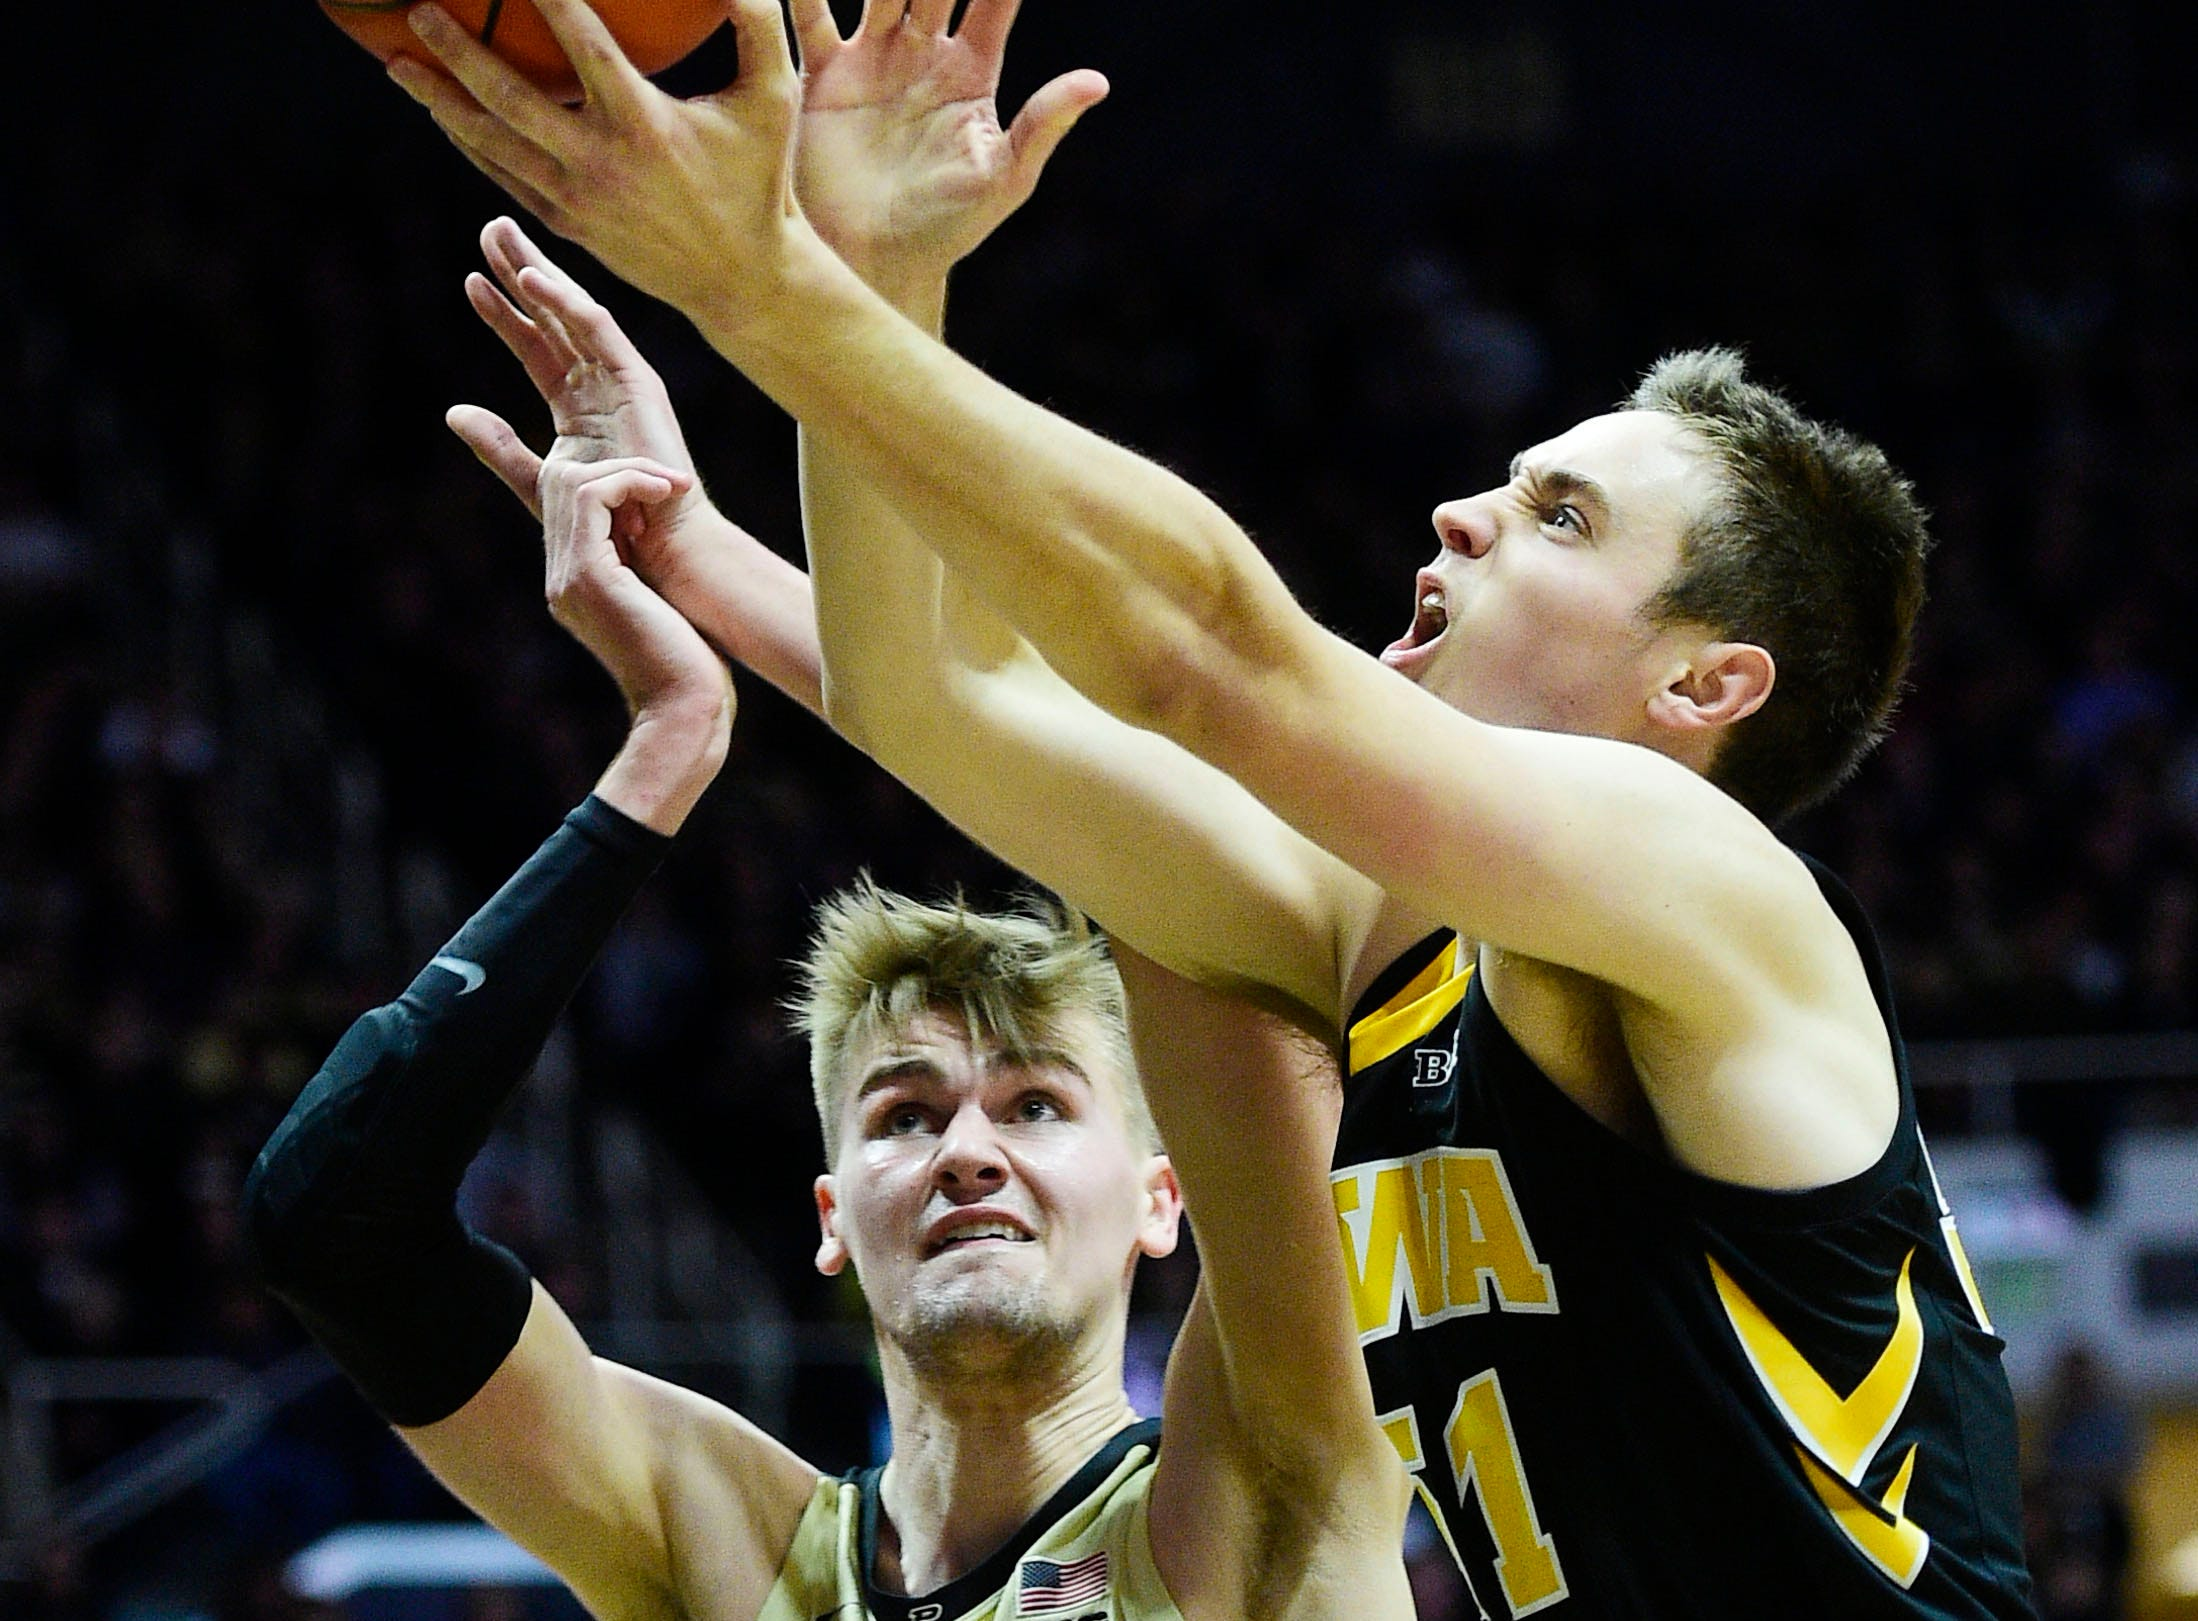 Jan 3, 2019; West Lafayette, IN, USA;  Iowa Hawkeyes forward Nicholas Baer  (51) is fouled in the first half by Purdue Boilermakers center Matt Haarms (32) at Mackey Arena. Mandatory Credit: Thomas J. Russo-USA TODAY Sports